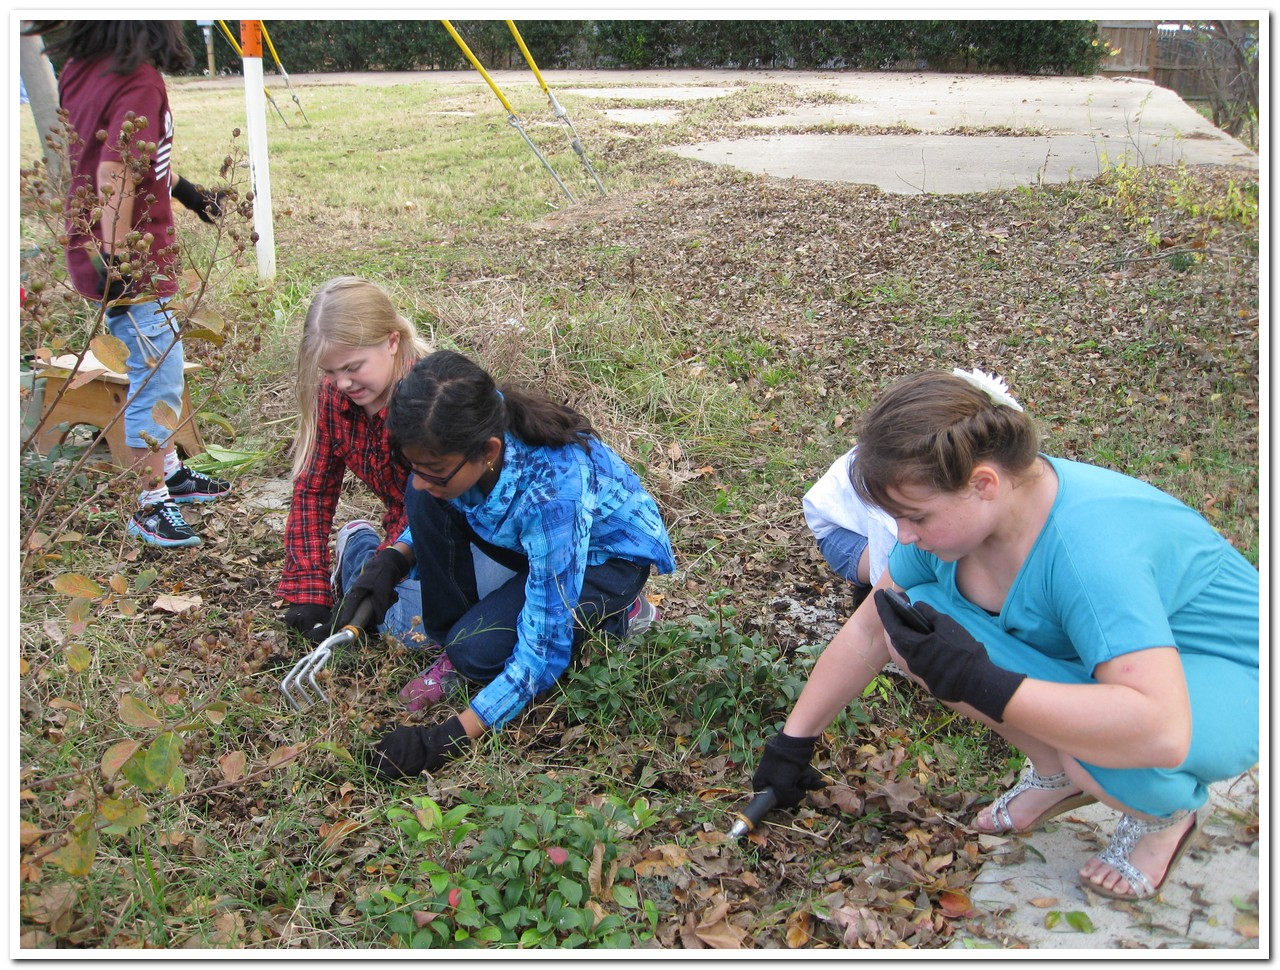 Weeds flower beds - Cleanup Crew From Brown Elementary Weeds Flower Beds At 110 And 346 Corners